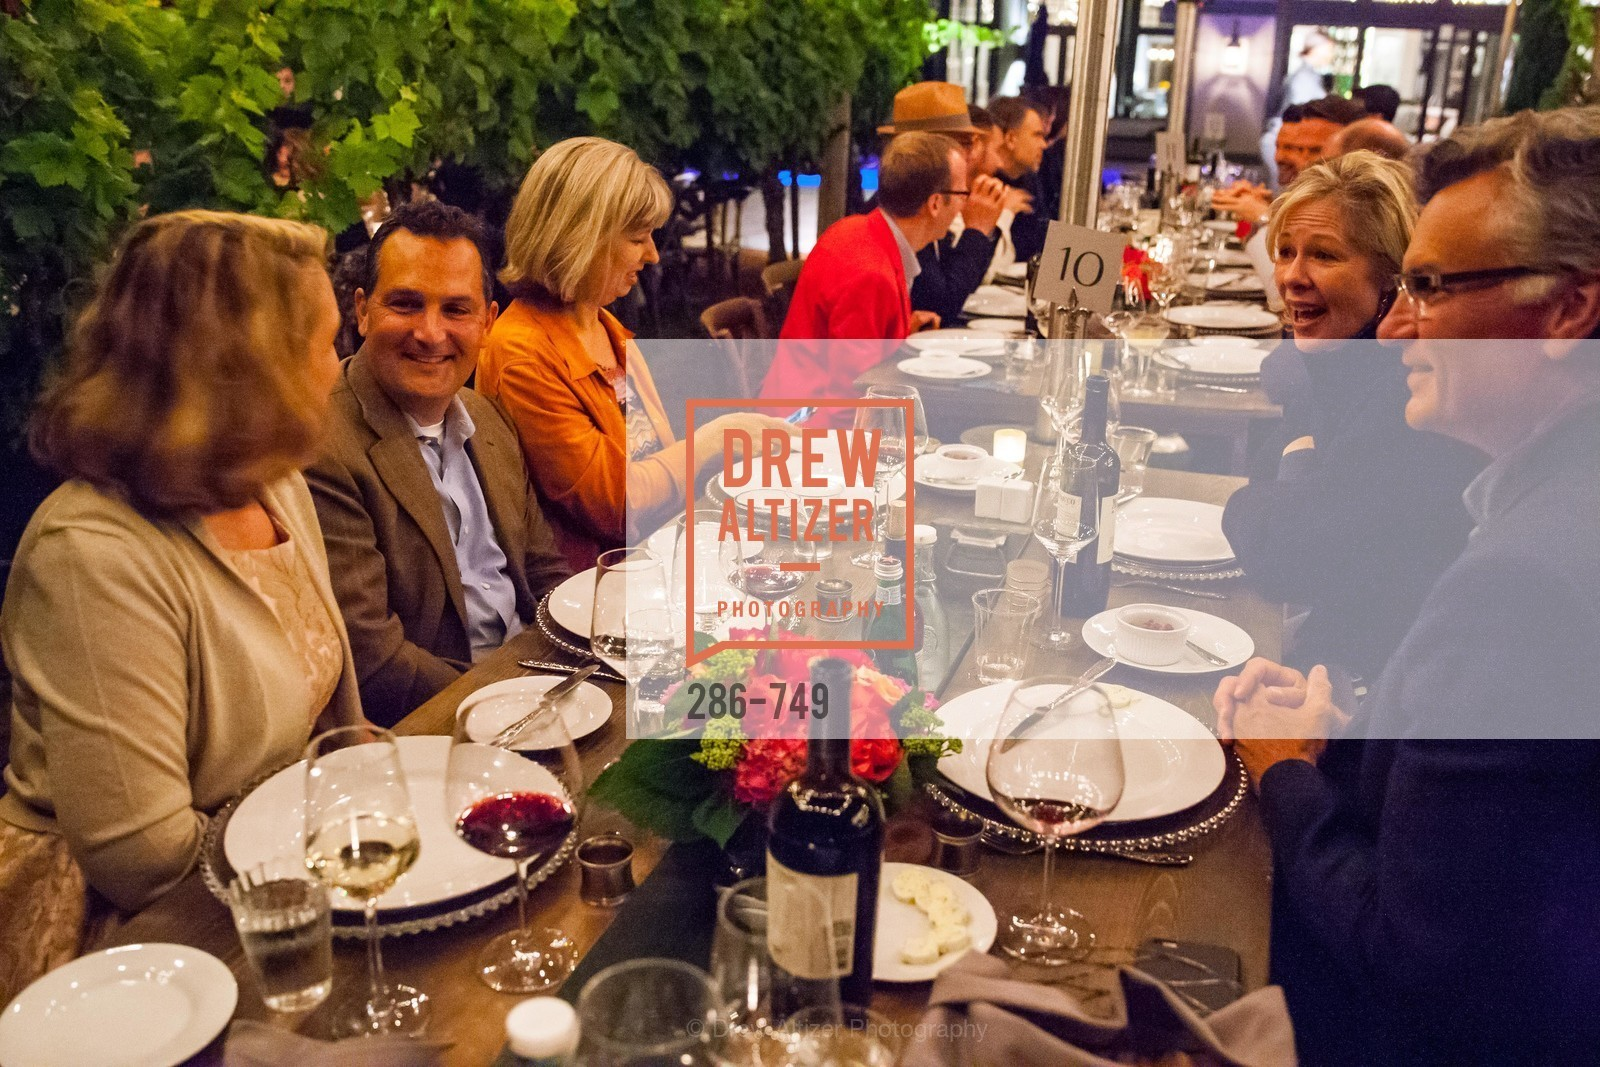 Ann von Germeten, Craig Stevenson, Linda Dujmovich, PETER COPPING Meets and Greets OSCAR DELA RENTA Clients and Associates at NEIMAN MARCUS, US, May 23rd, 2015,Drew Altizer, Drew Altizer Photography, full-service agency, private events, San Francisco photographer, photographer california